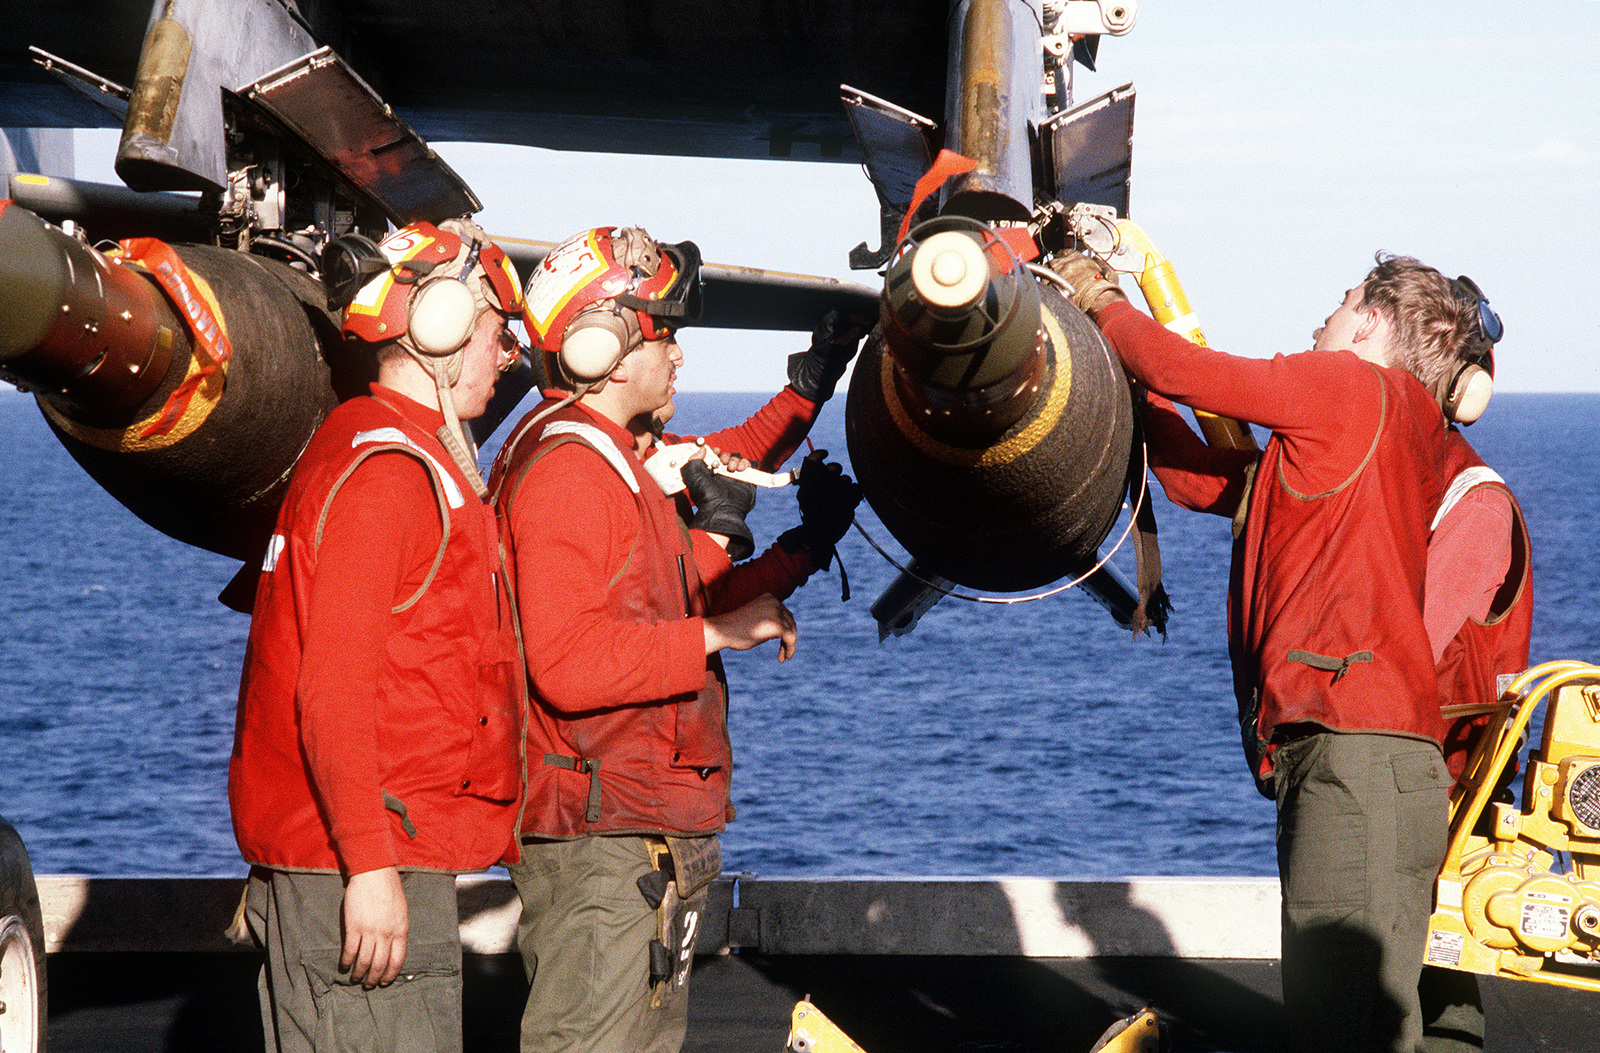 Aviation ordnanceman on the flight deck of the aircraft carrier USS JOHN F. KENNEDY (CV-67) mount a laser-guided bomb on an A-6E Intruder aircraft as it is fitted for strikes on Iraqi targets at the onset of Operation Desert Storm